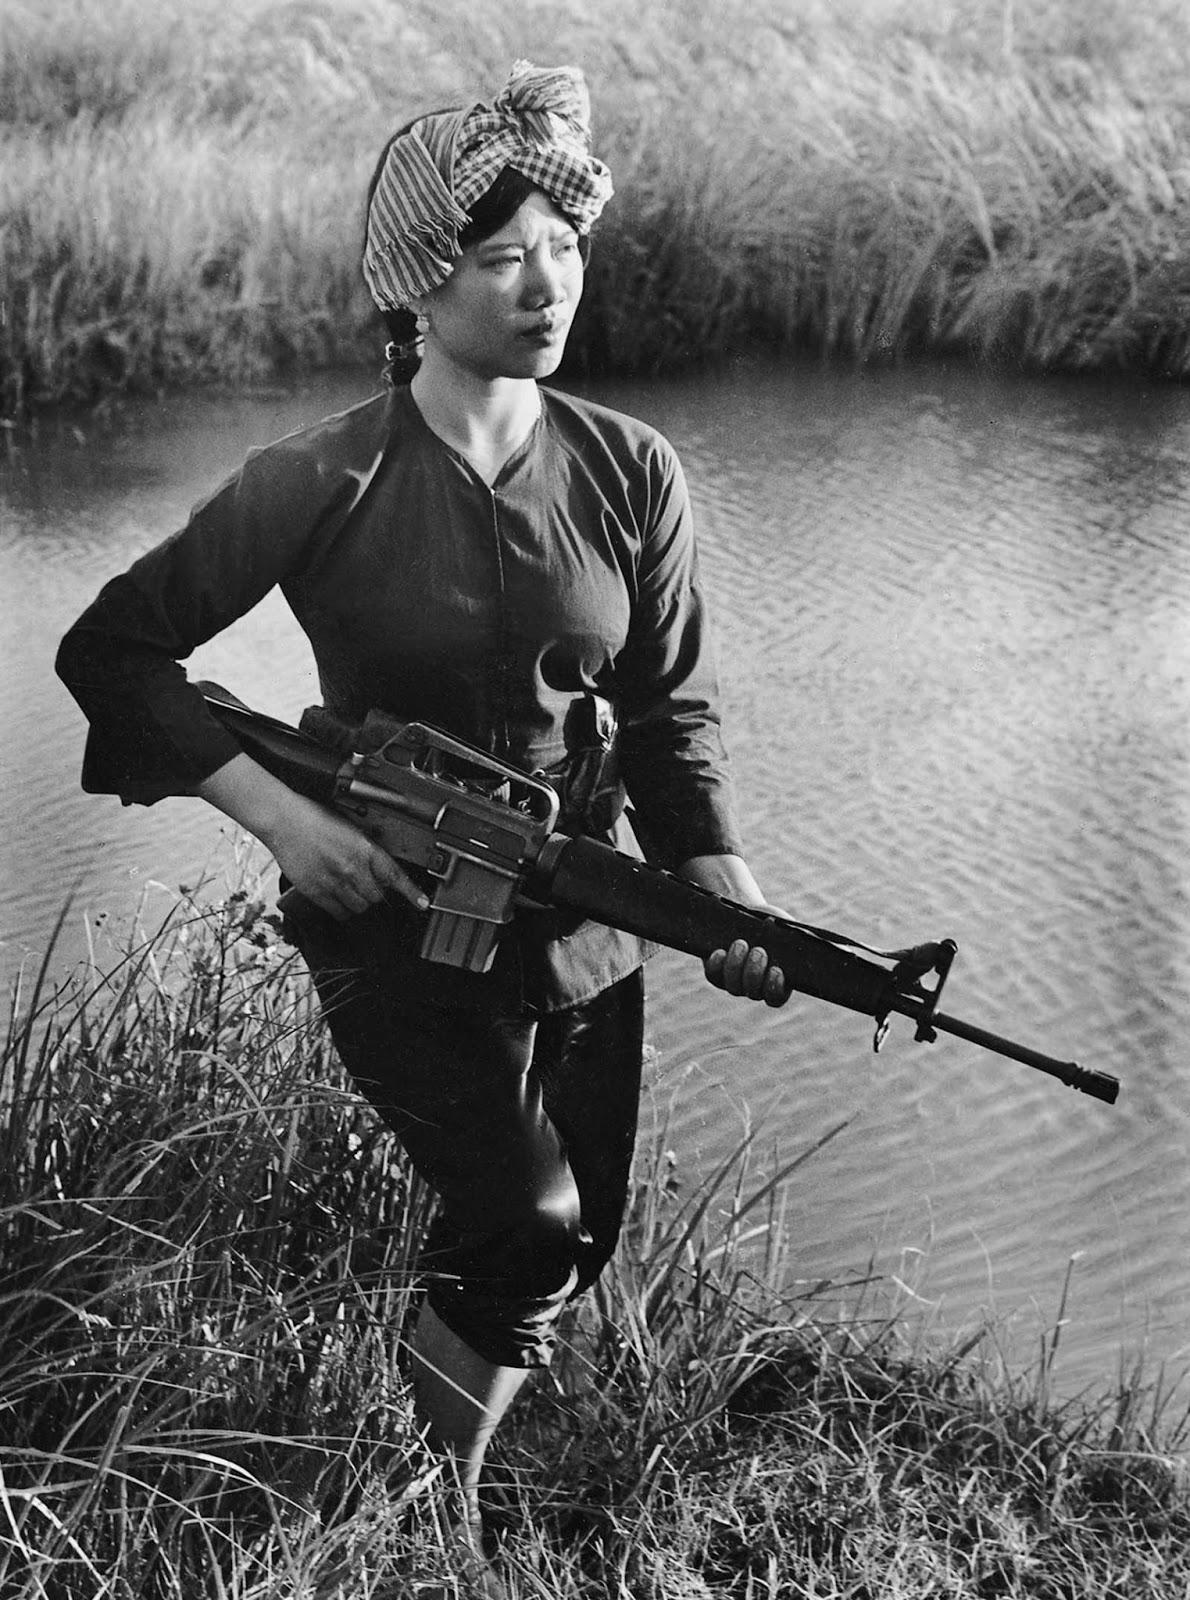 A Viet Cong guerrilla stands guard in the Mekong Delta.